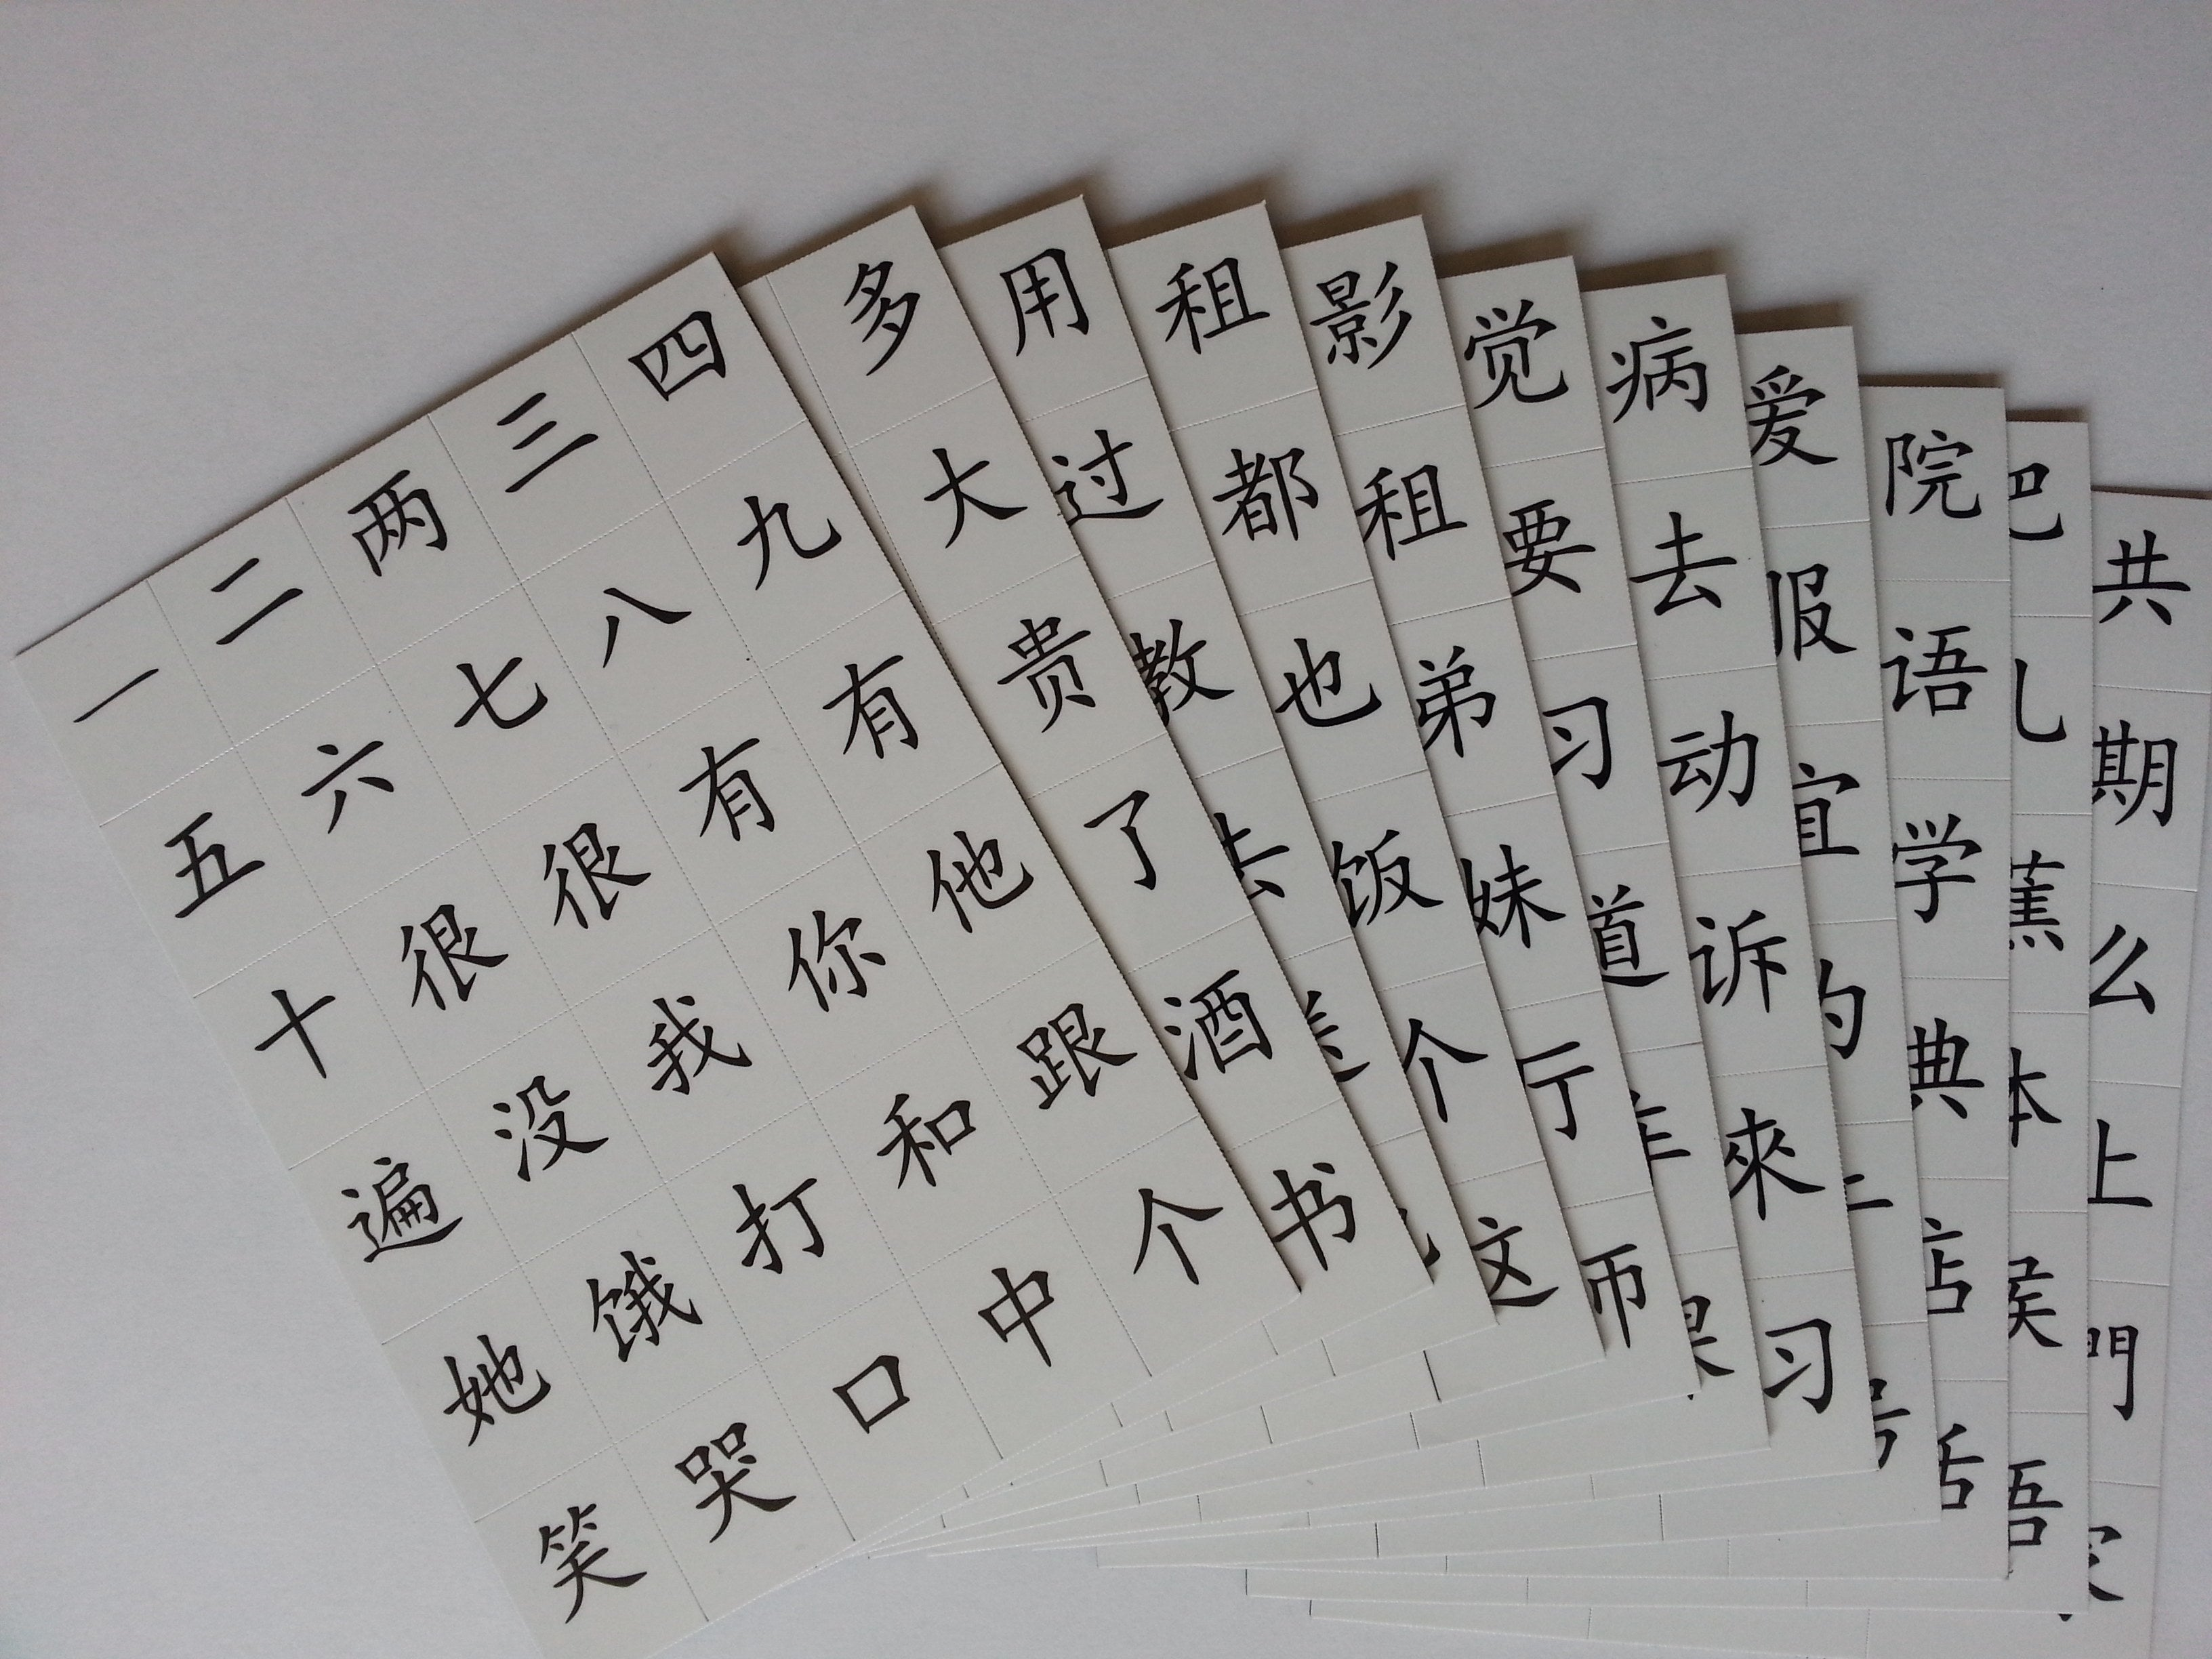 Mandarin Chinese character magnets 240 common simplified characters